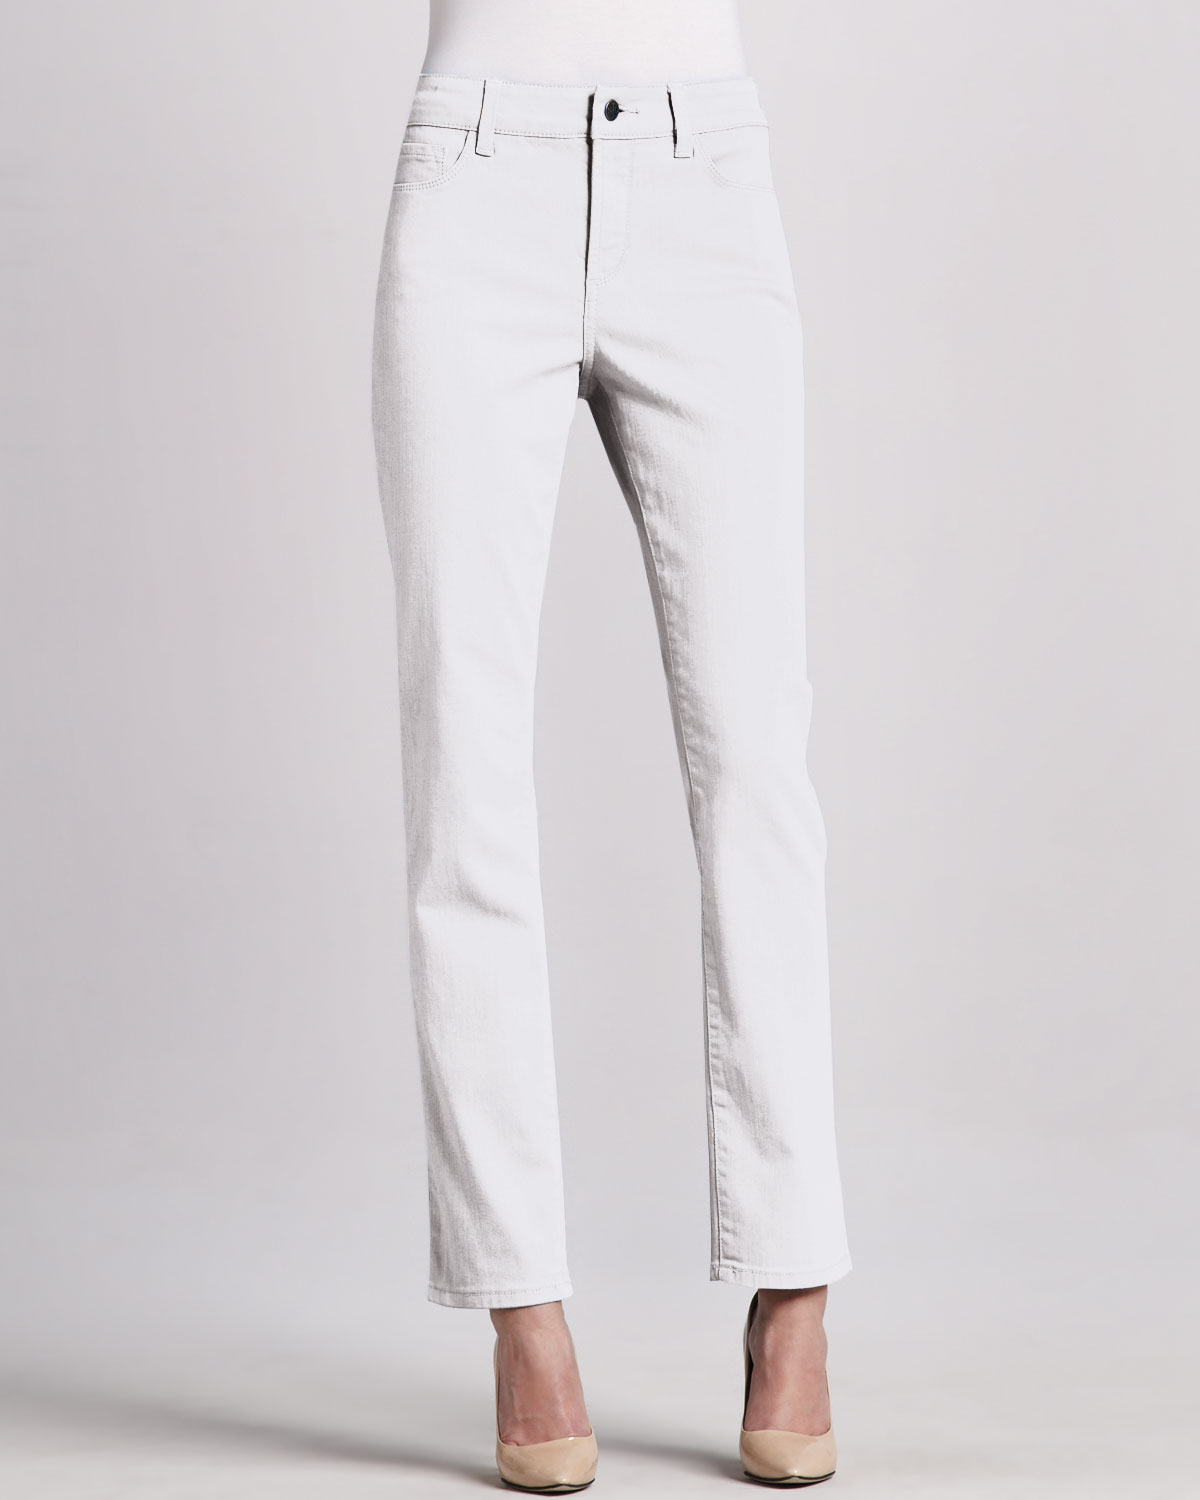 ANN TAYLOR's petite jeans and denim have all the style and great fit, too. Shop perfectly proportioned flare jeans, cropped jeans, ankle jeans & more.